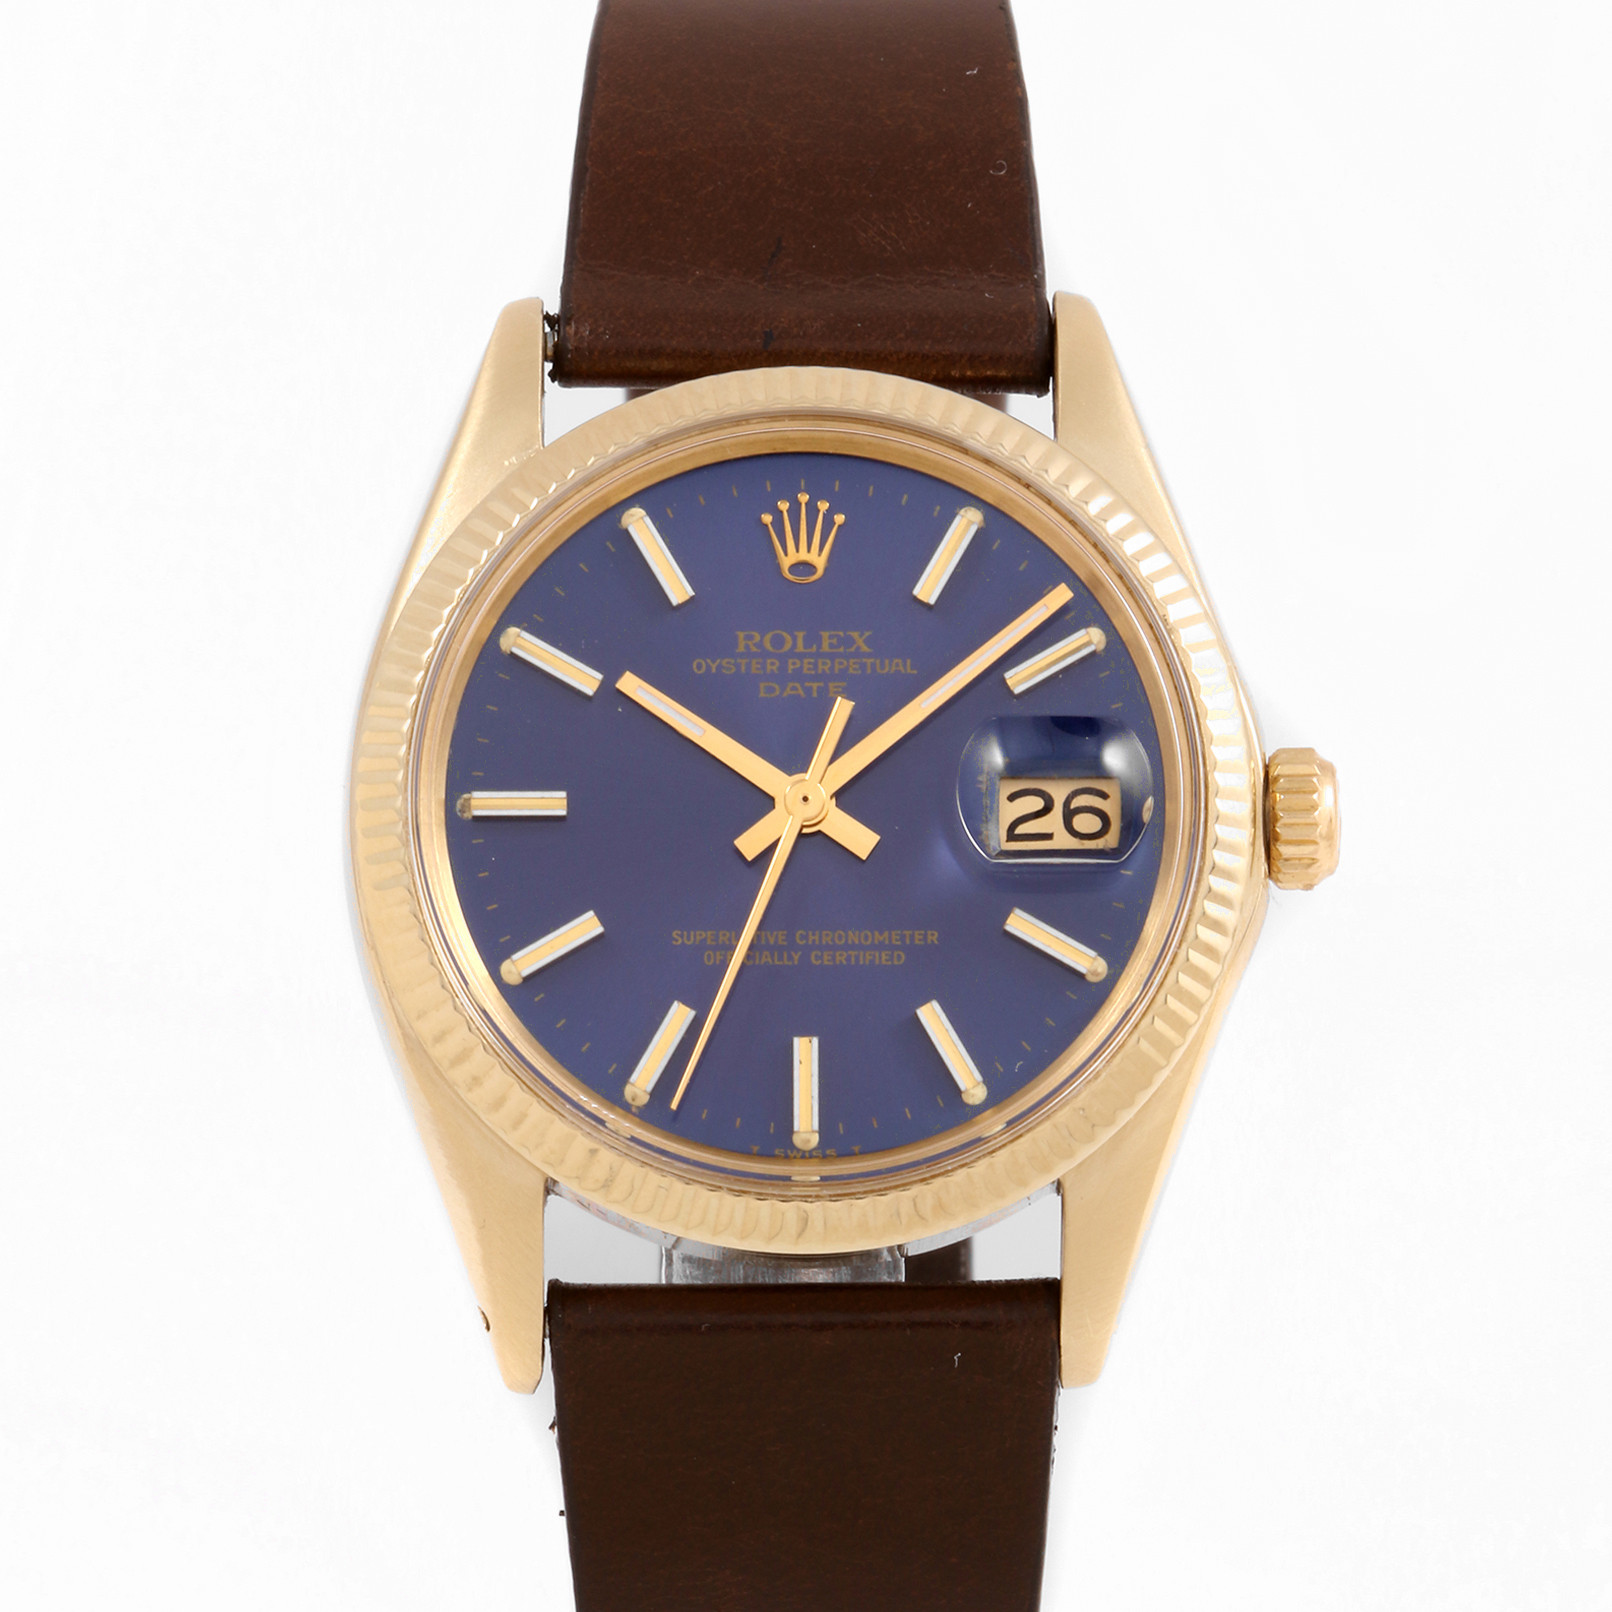 Rolex 1503 Mens Oyster Perpetual Date 34 mm Yellow Gold w/ Blue Stick Dial & Fluted Bezel with Brown Leather Strap - Pre-Owned